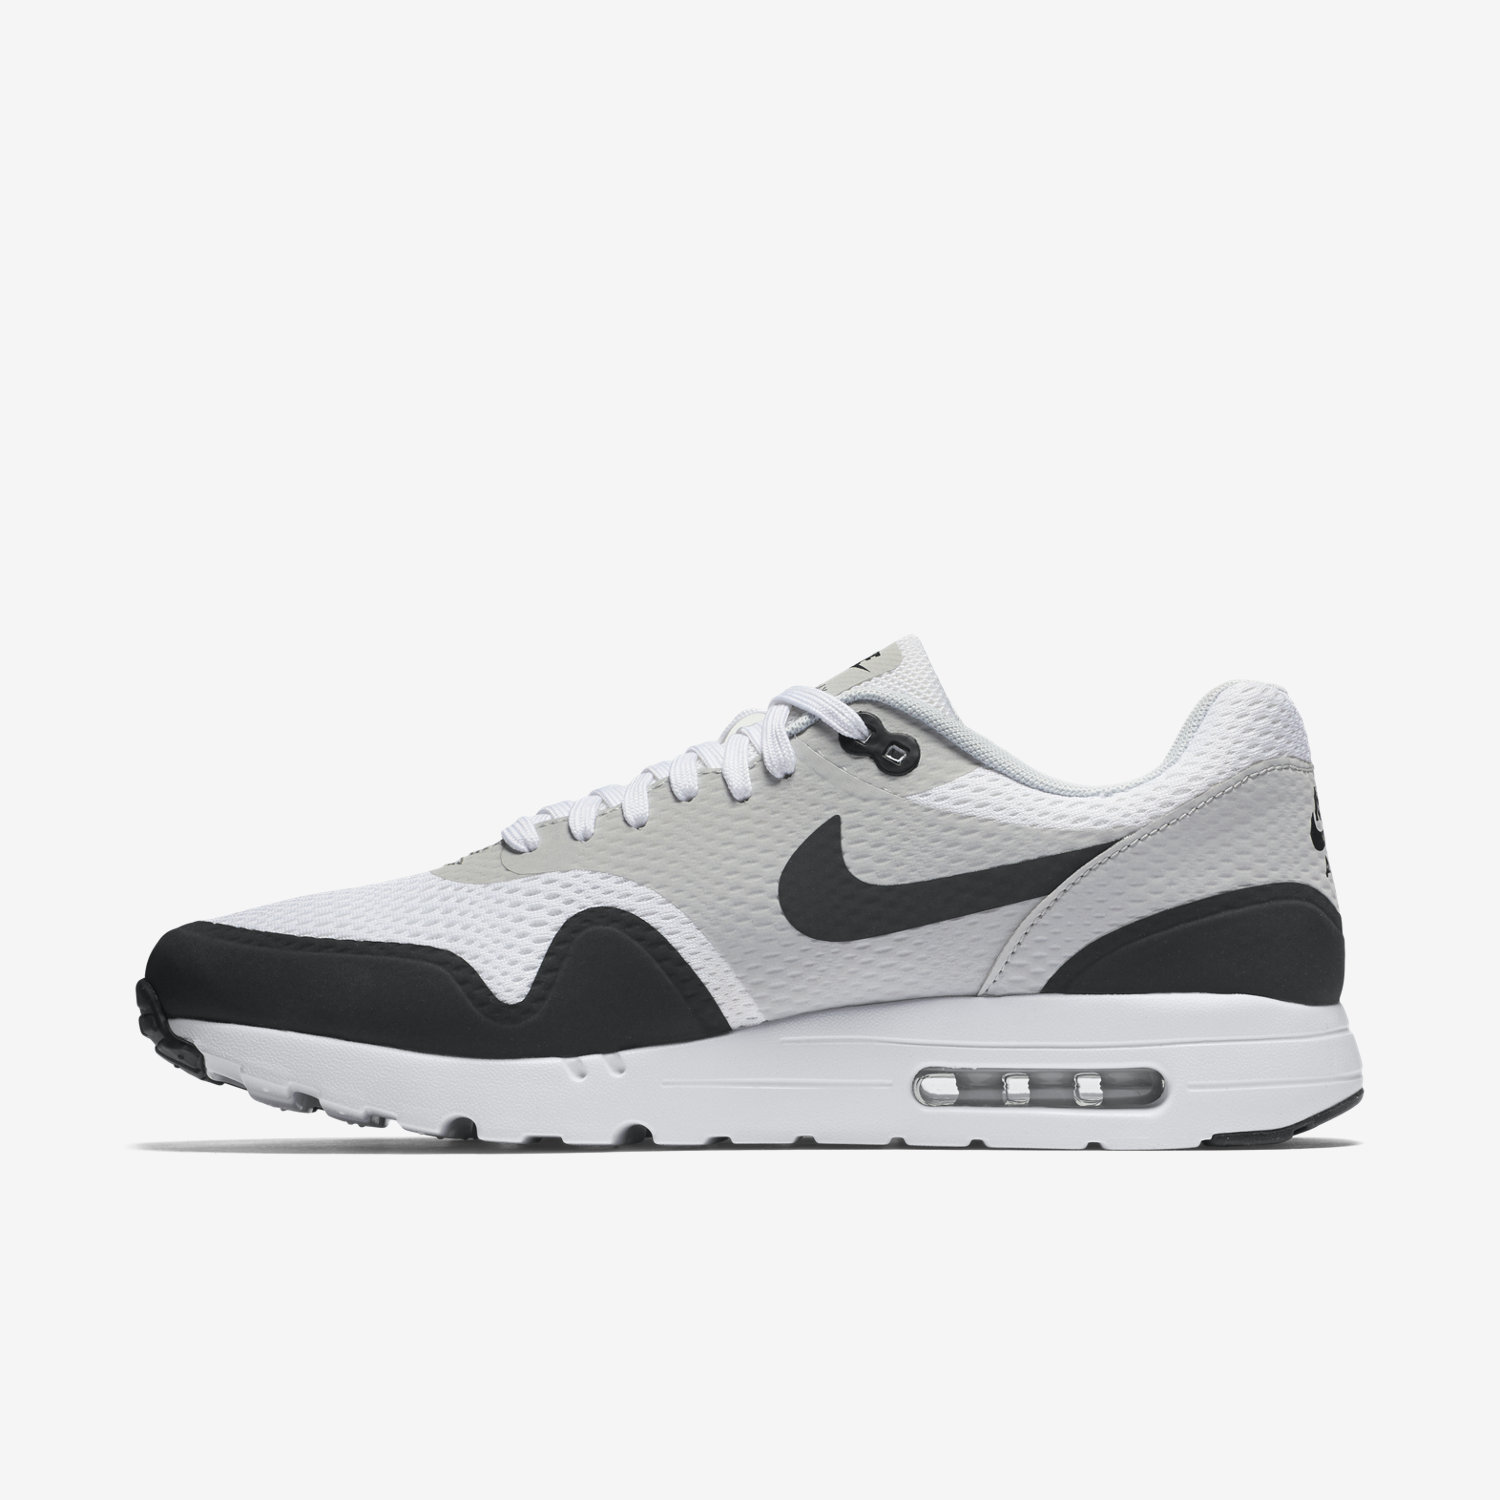 nike air max 1 essential nike vendre. Black Bedroom Furniture Sets. Home Design Ideas